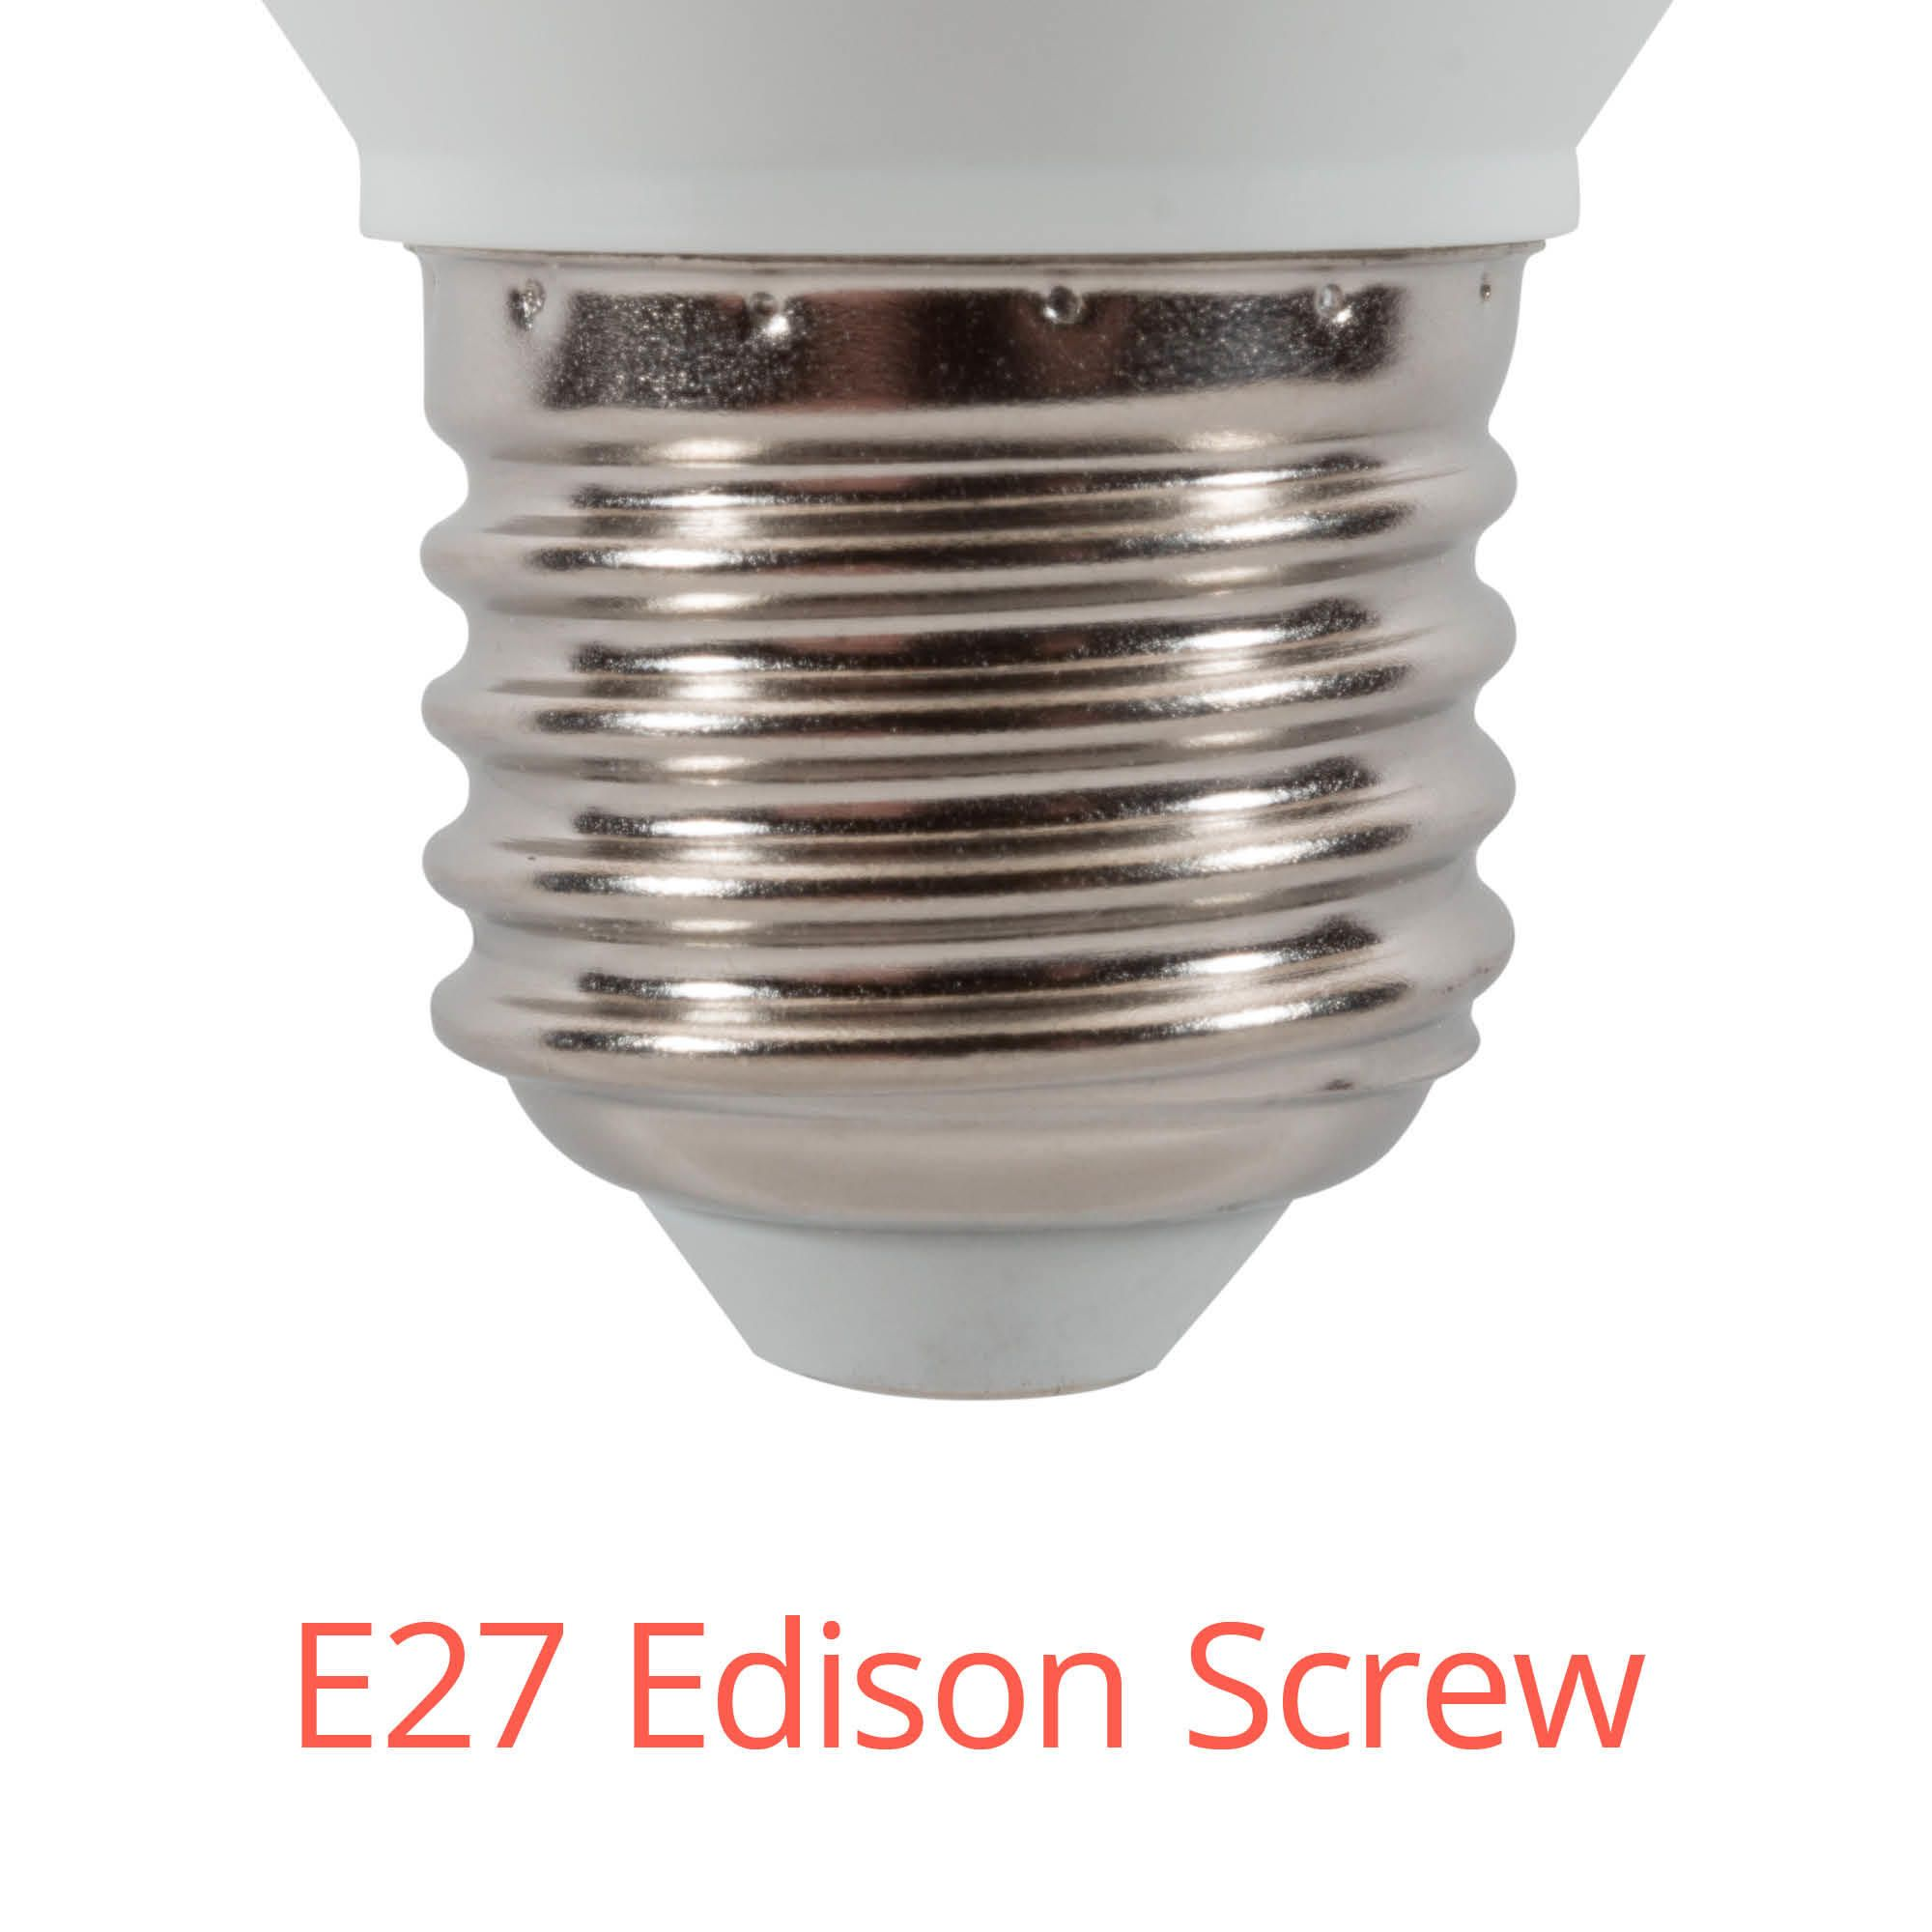 2x 6 Watt Led E27 Edison Screw Candle Bulb Cool White